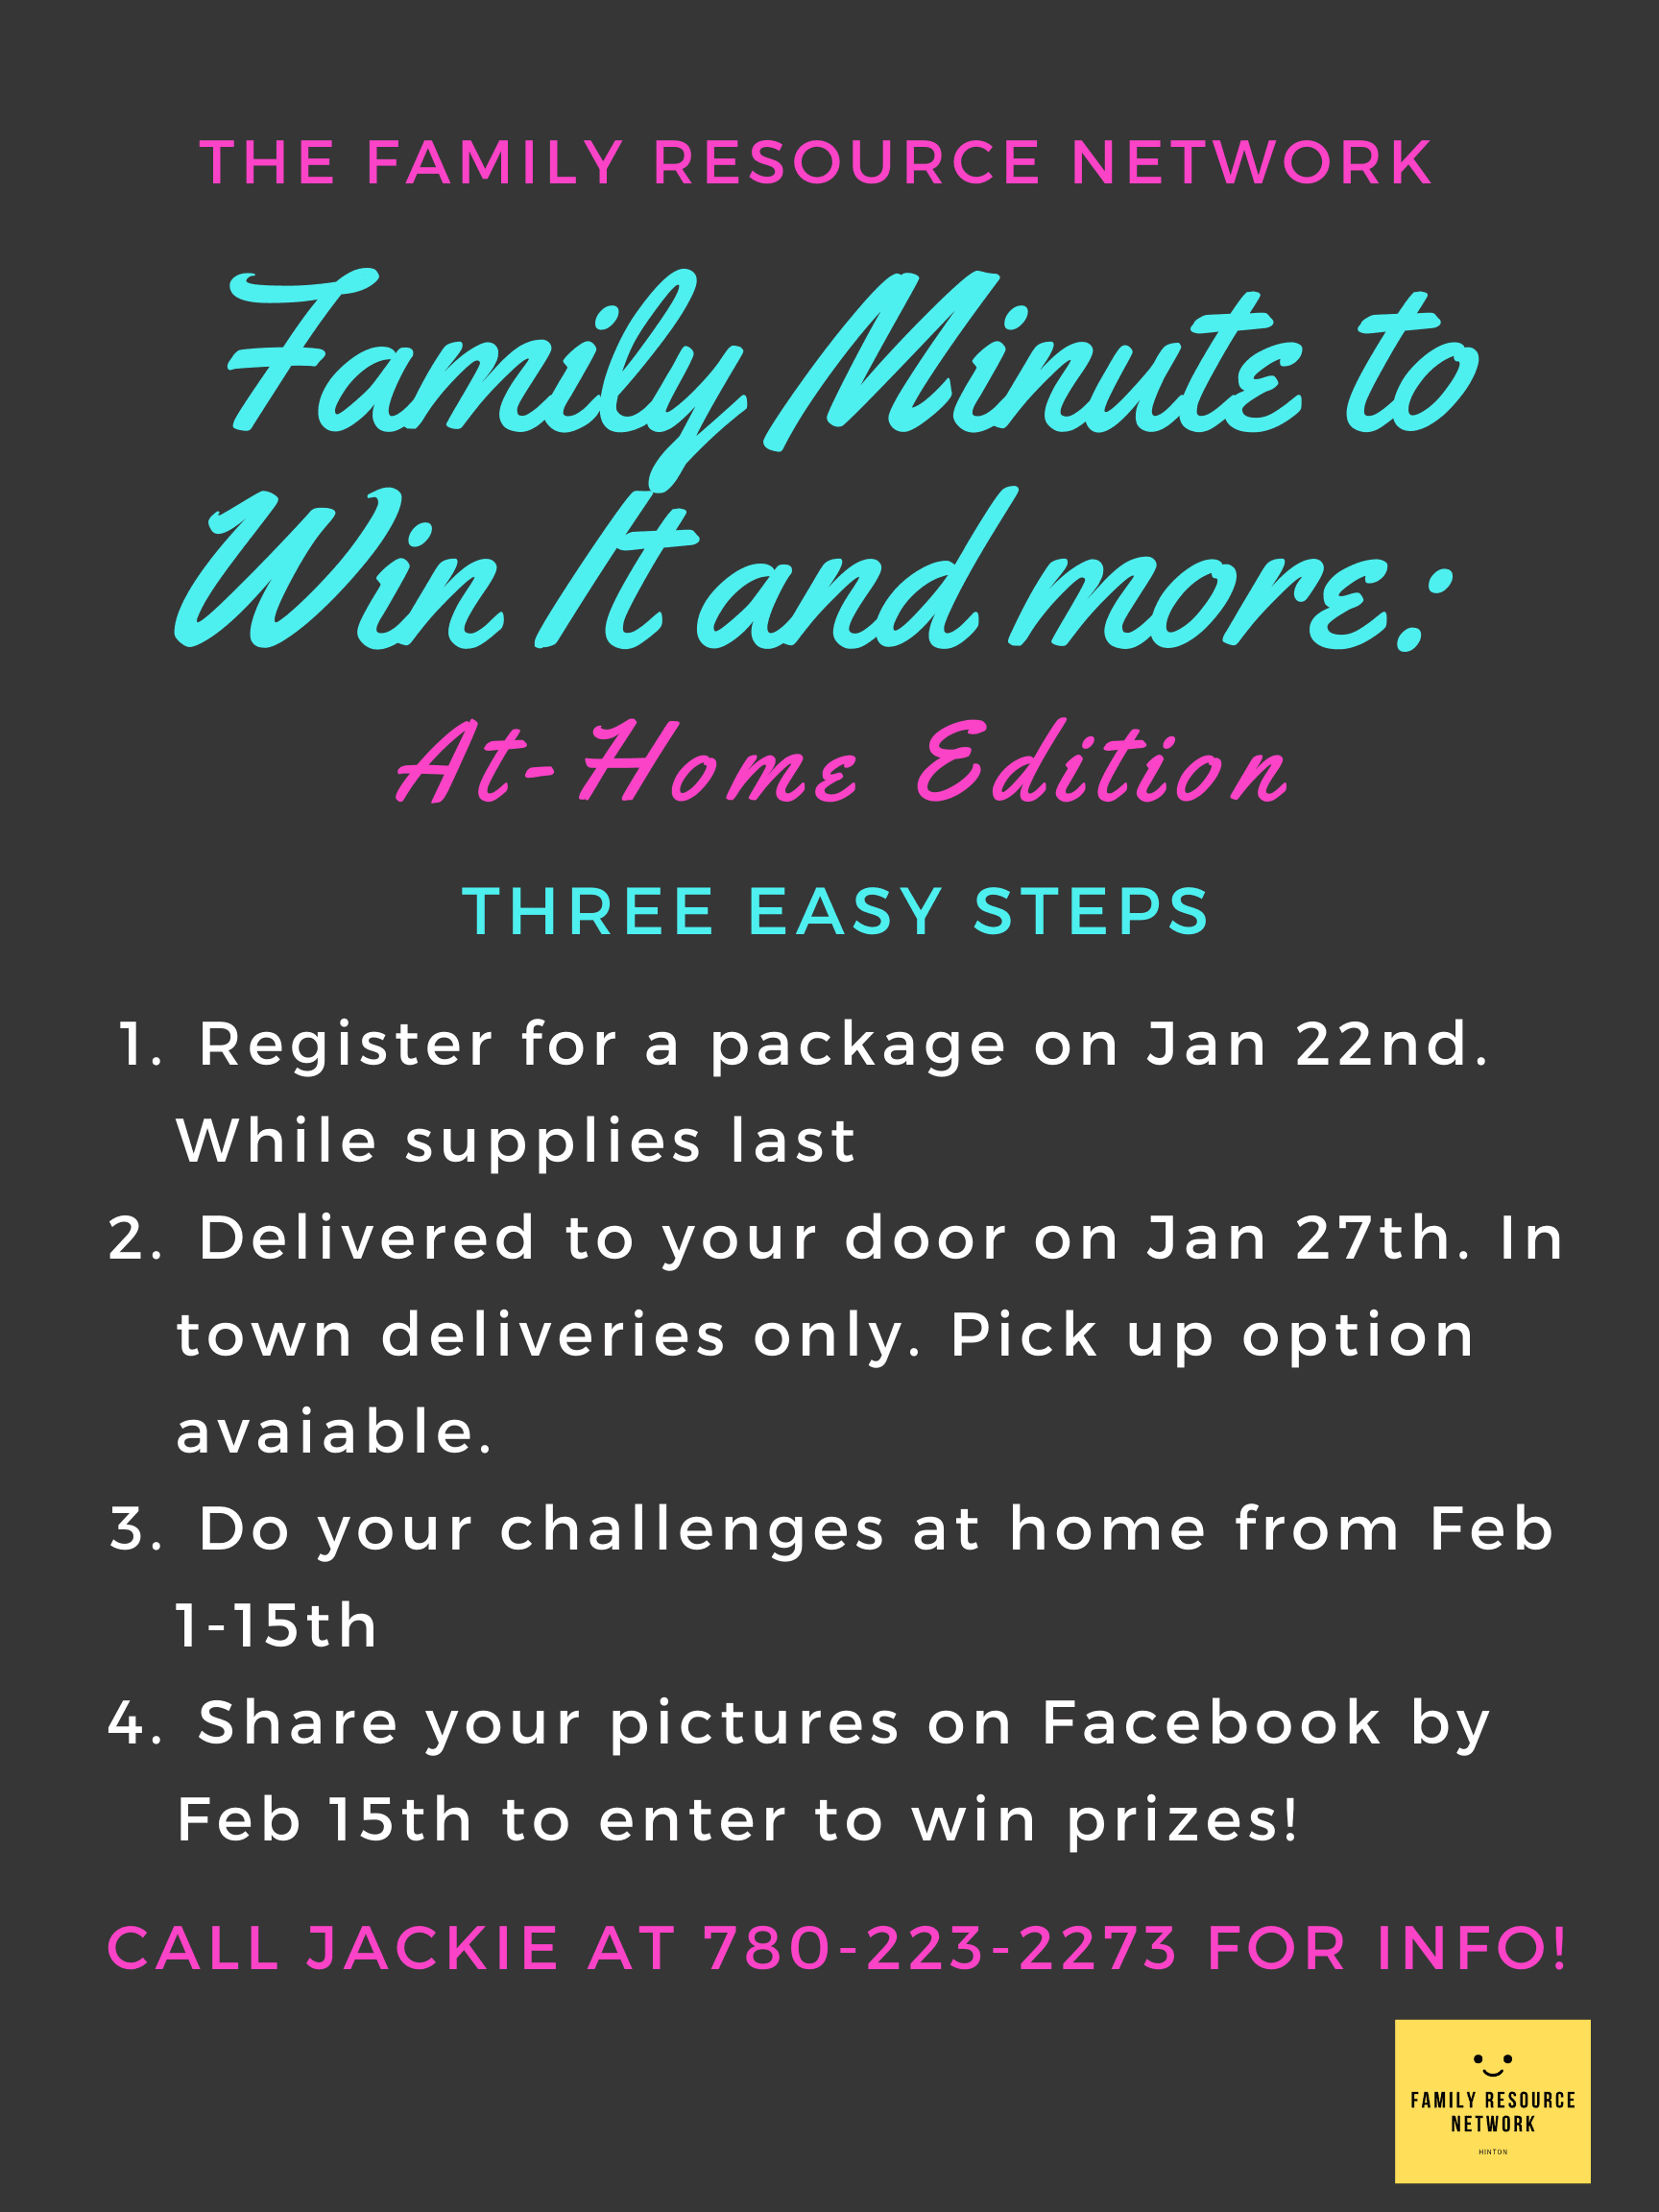 Family Minute to Win It: contact Jackie at jdelves@hinton.ca for more more information